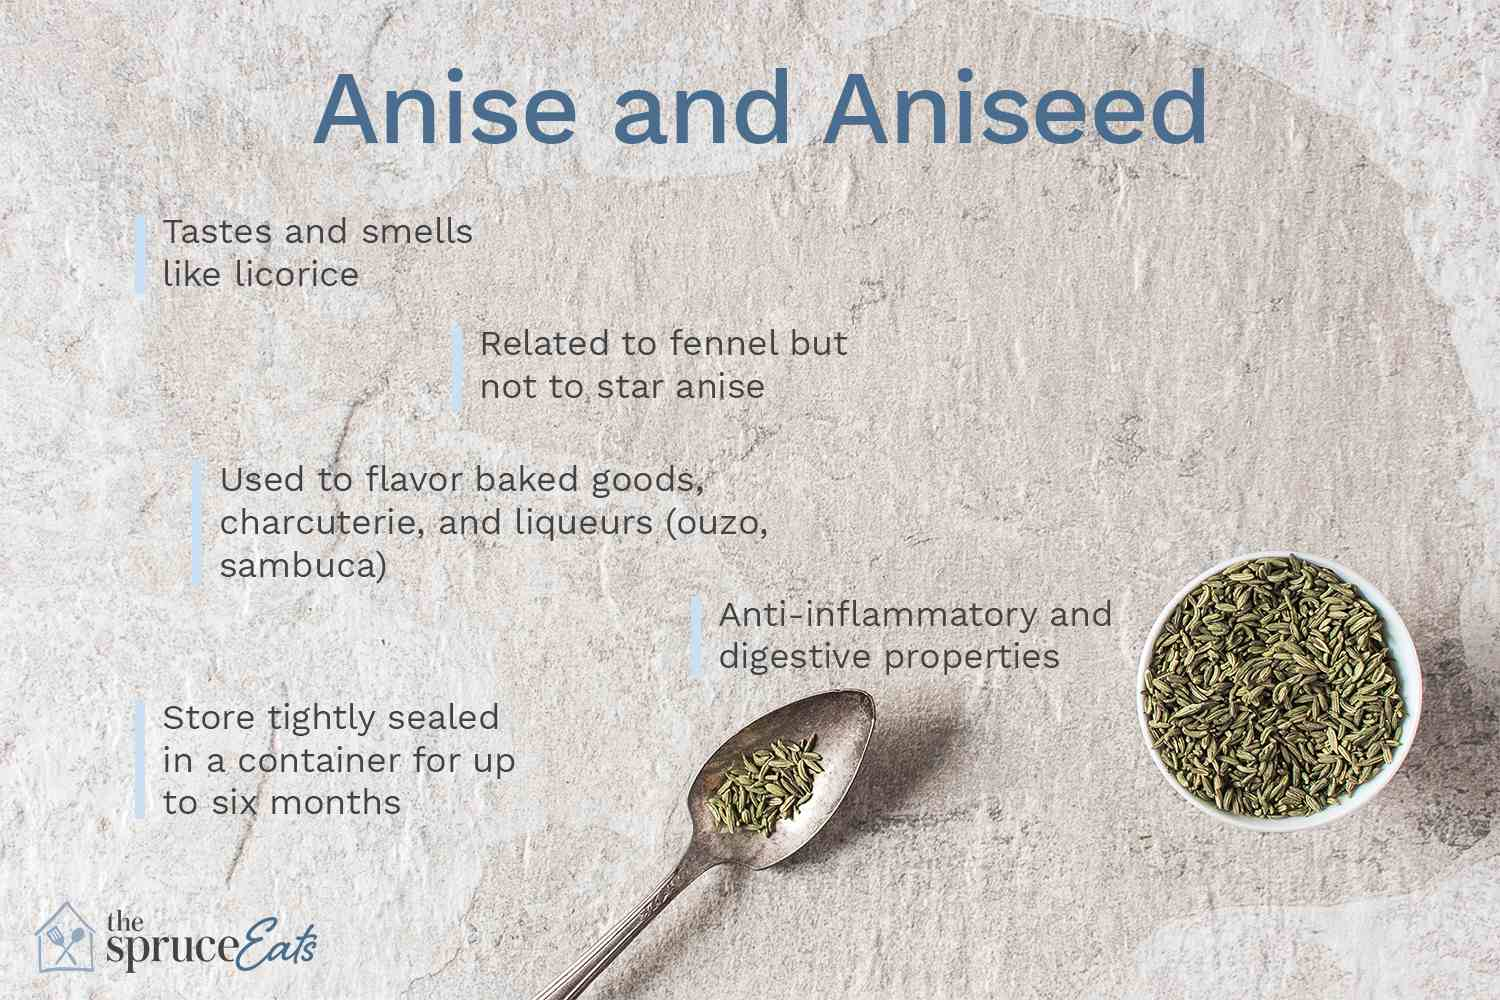 Anise and aniseed graphic